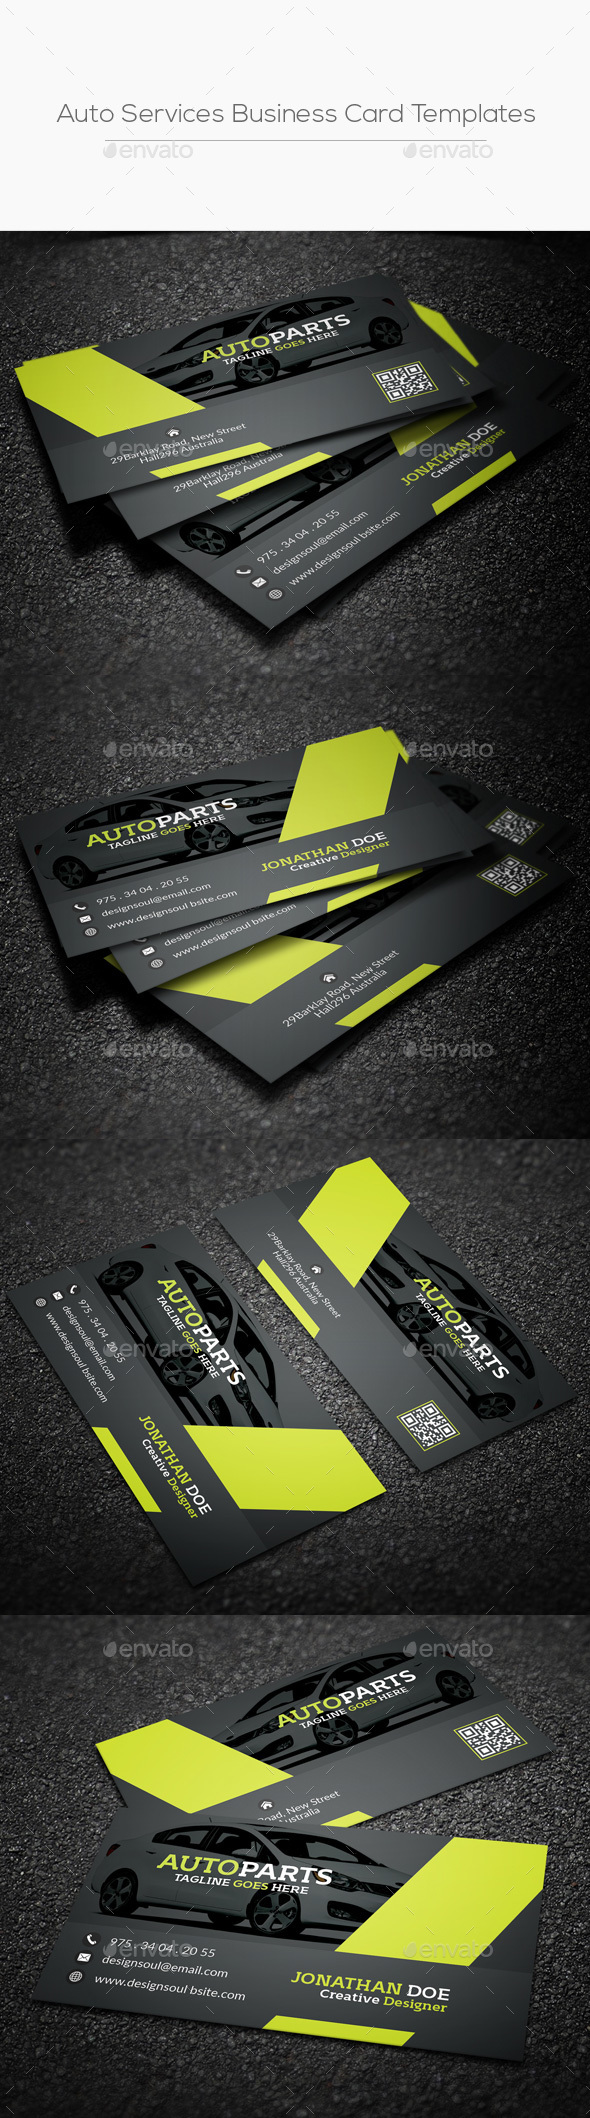 Auto Services Business Card Templates - Business Cards Print Templates